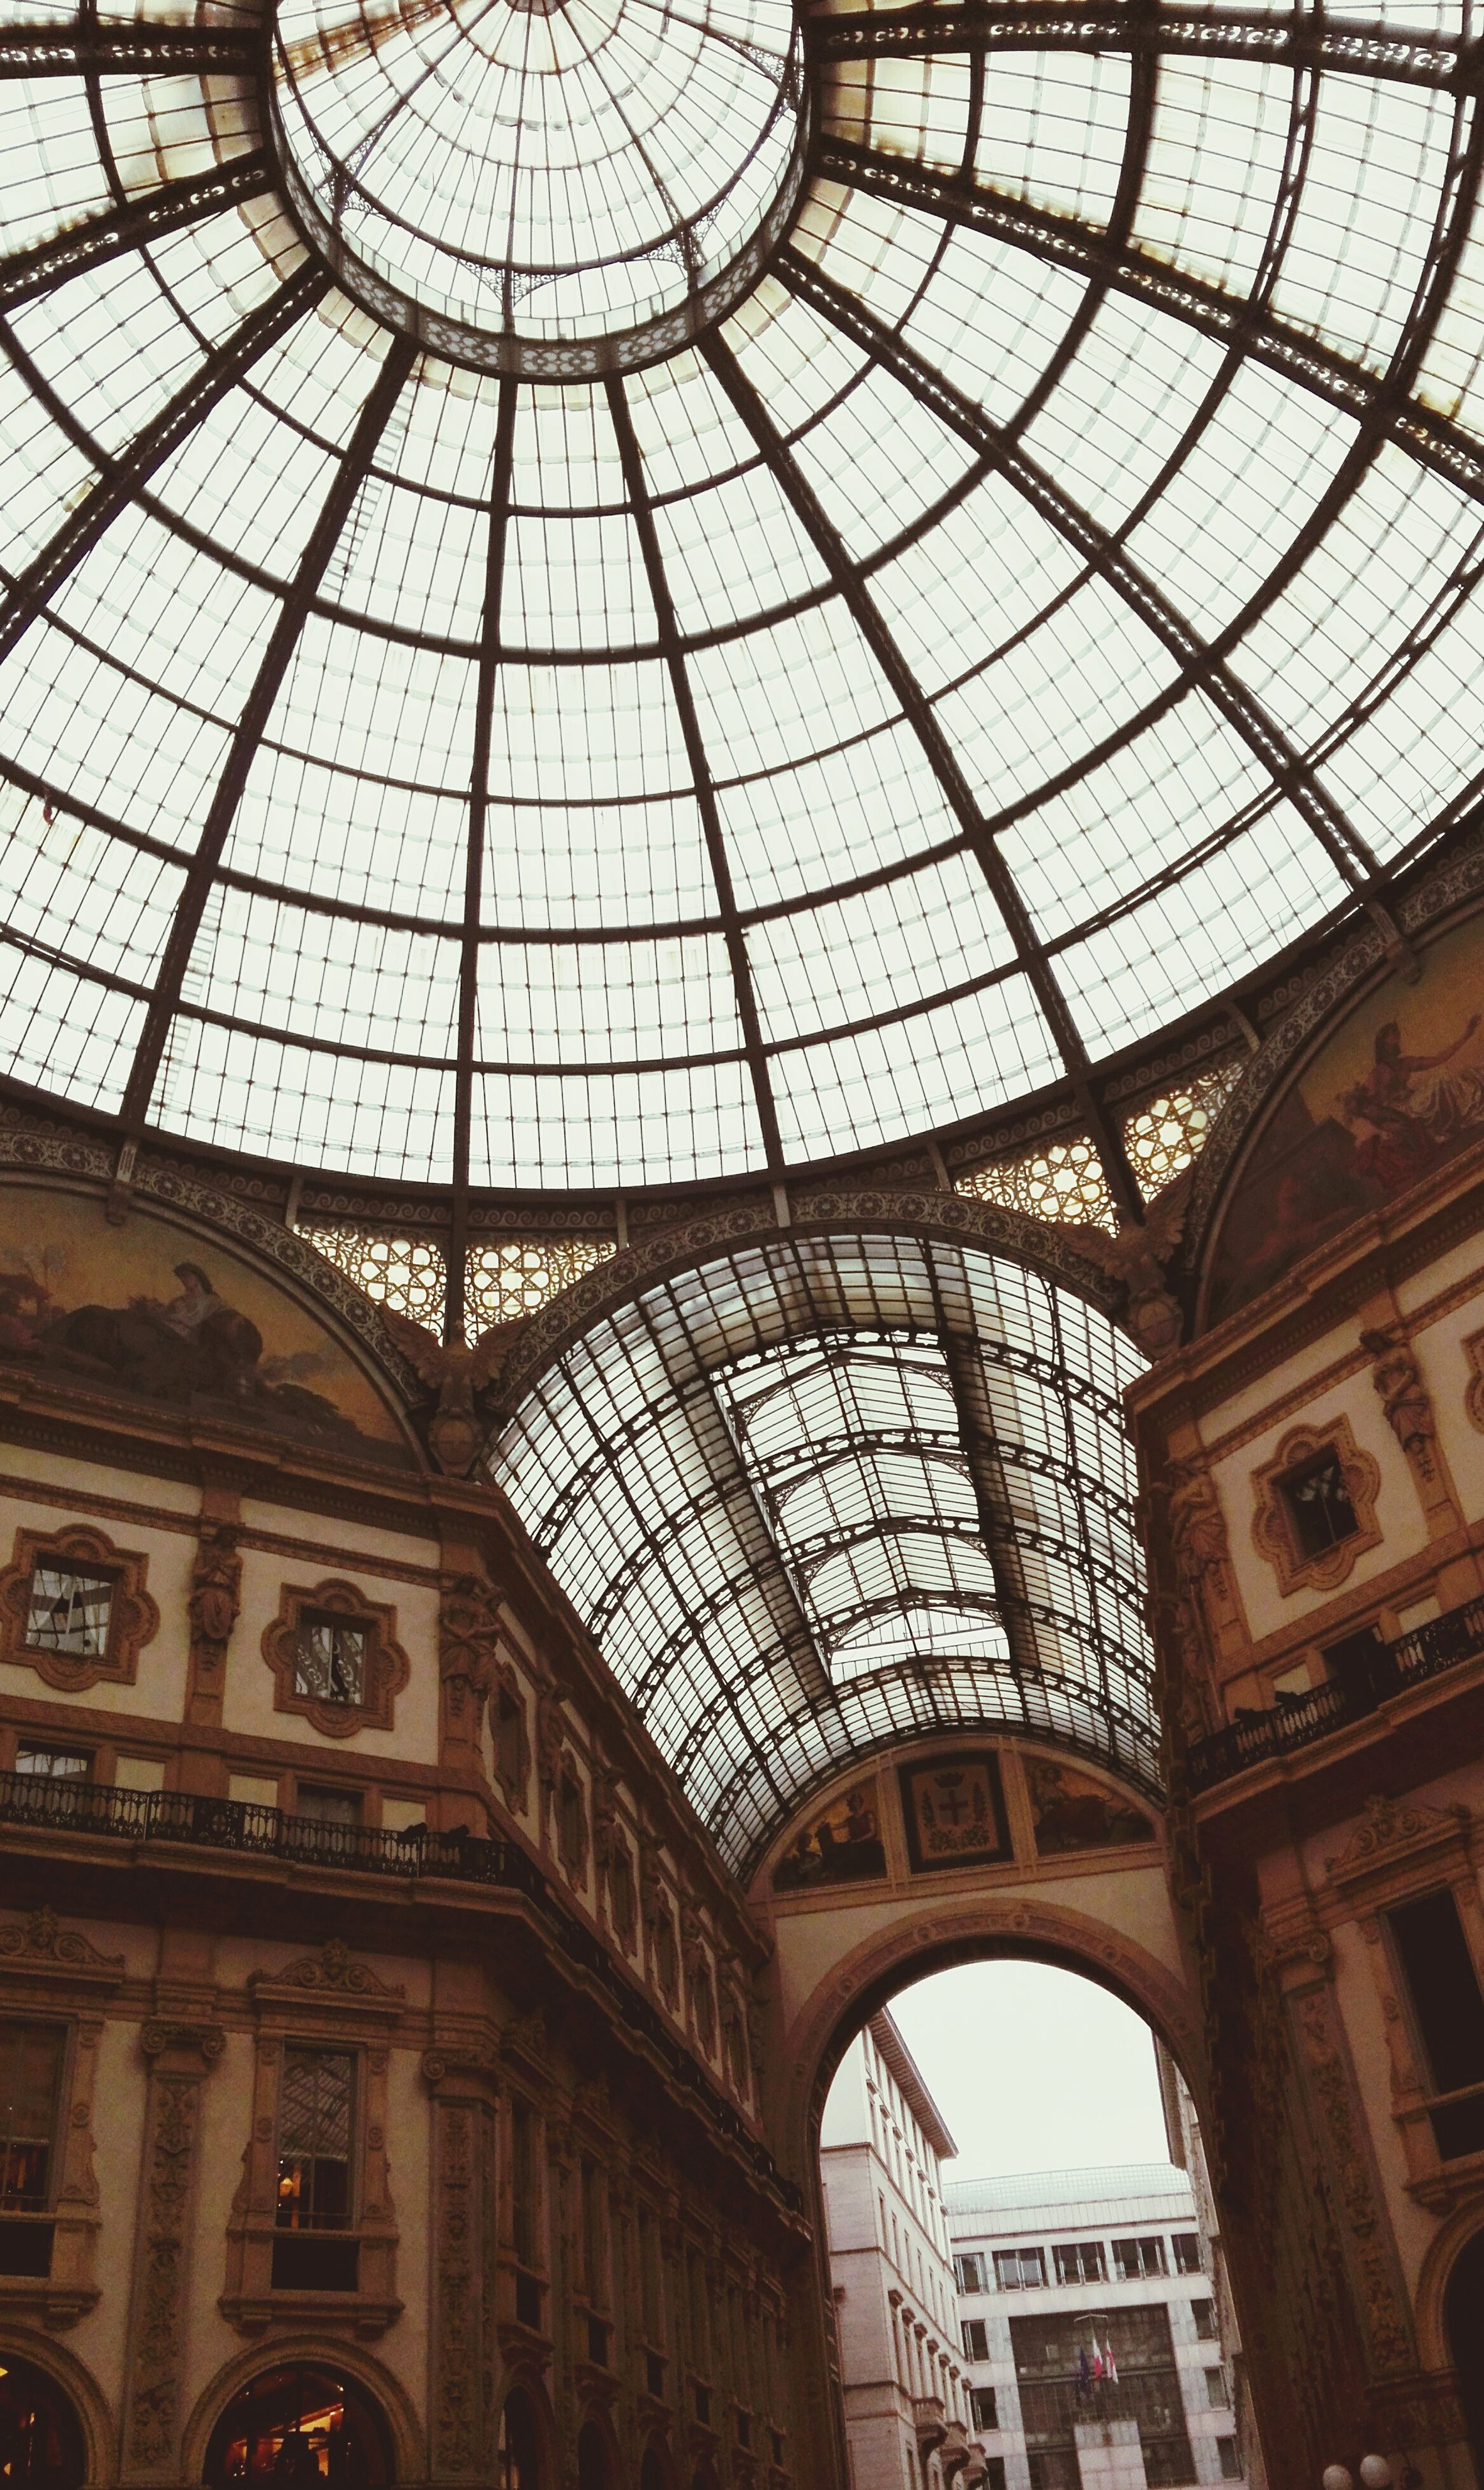 ceiling, architecture, indoors, travel destinations, travel, low angle view, tourism, day, no people, built structure